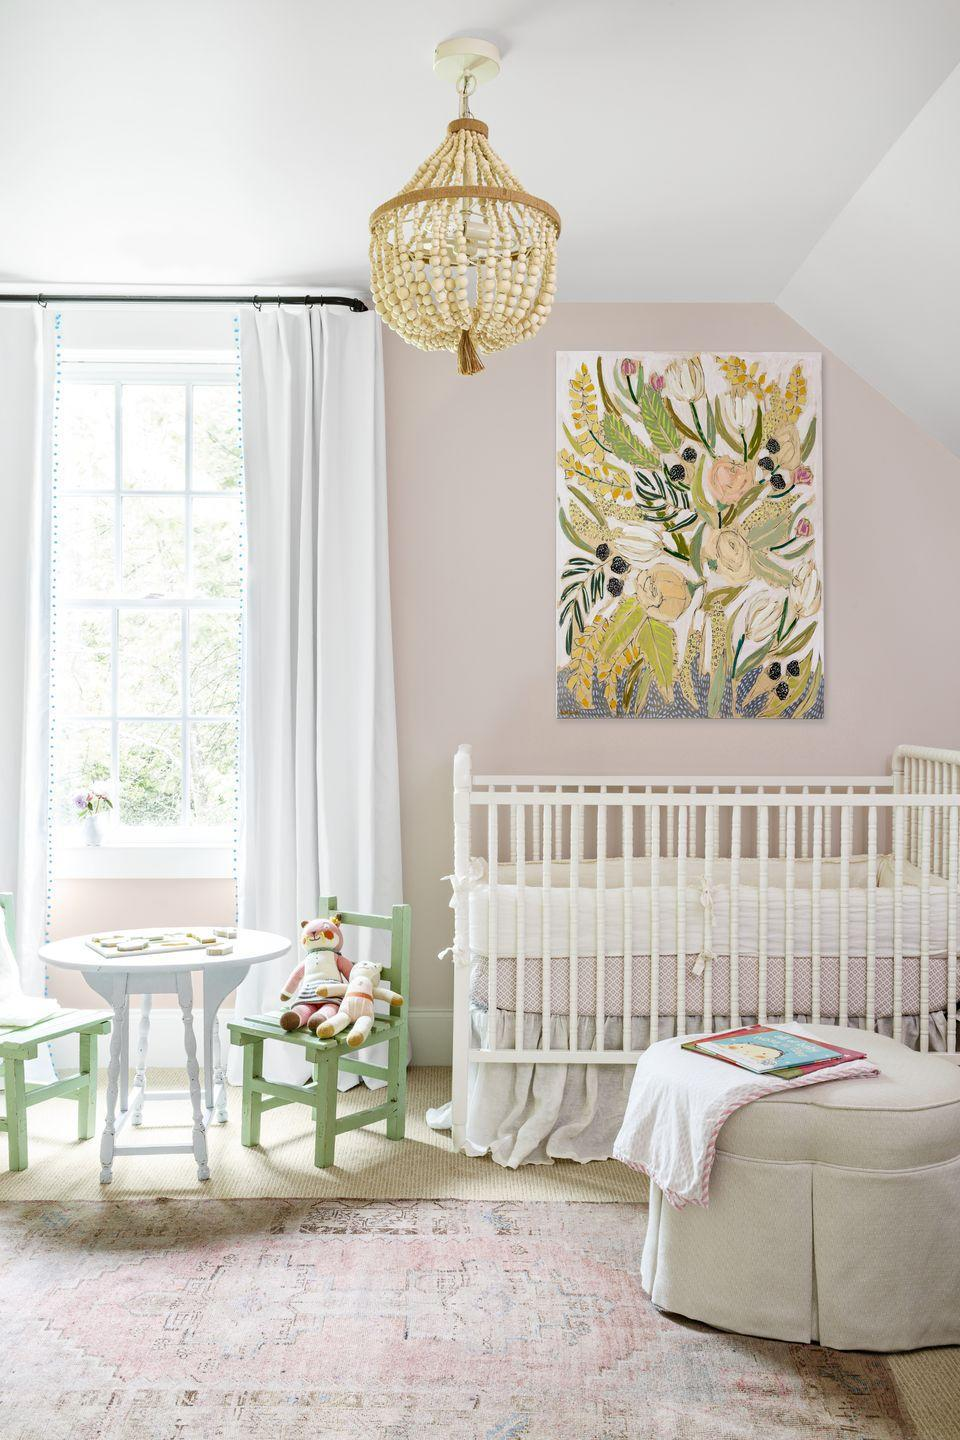 """<p>Tickled pin with the family's new addition, Tennessee homeowner Mandy Reeves swathed her daughter's nursery in a lovely shade of blush. The color is subtle and works well with soft whites and other pastel colors. </p><p><strong>Get the Look: </strong><br>Wall Paint Color: <a href=""""https://www.sherwin-williams.com/homeowners/color/find-and-explore-colors/paint-colors-by-family/SW6322-intimate-white"""" rel=""""nofollow noopener"""" target=""""_blank"""" data-ylk=""""slk:Intimate White by Sherwin-Williams"""" class=""""link rapid-noclick-resp"""">Intimate White by Sherwin-Williams</a></p>"""